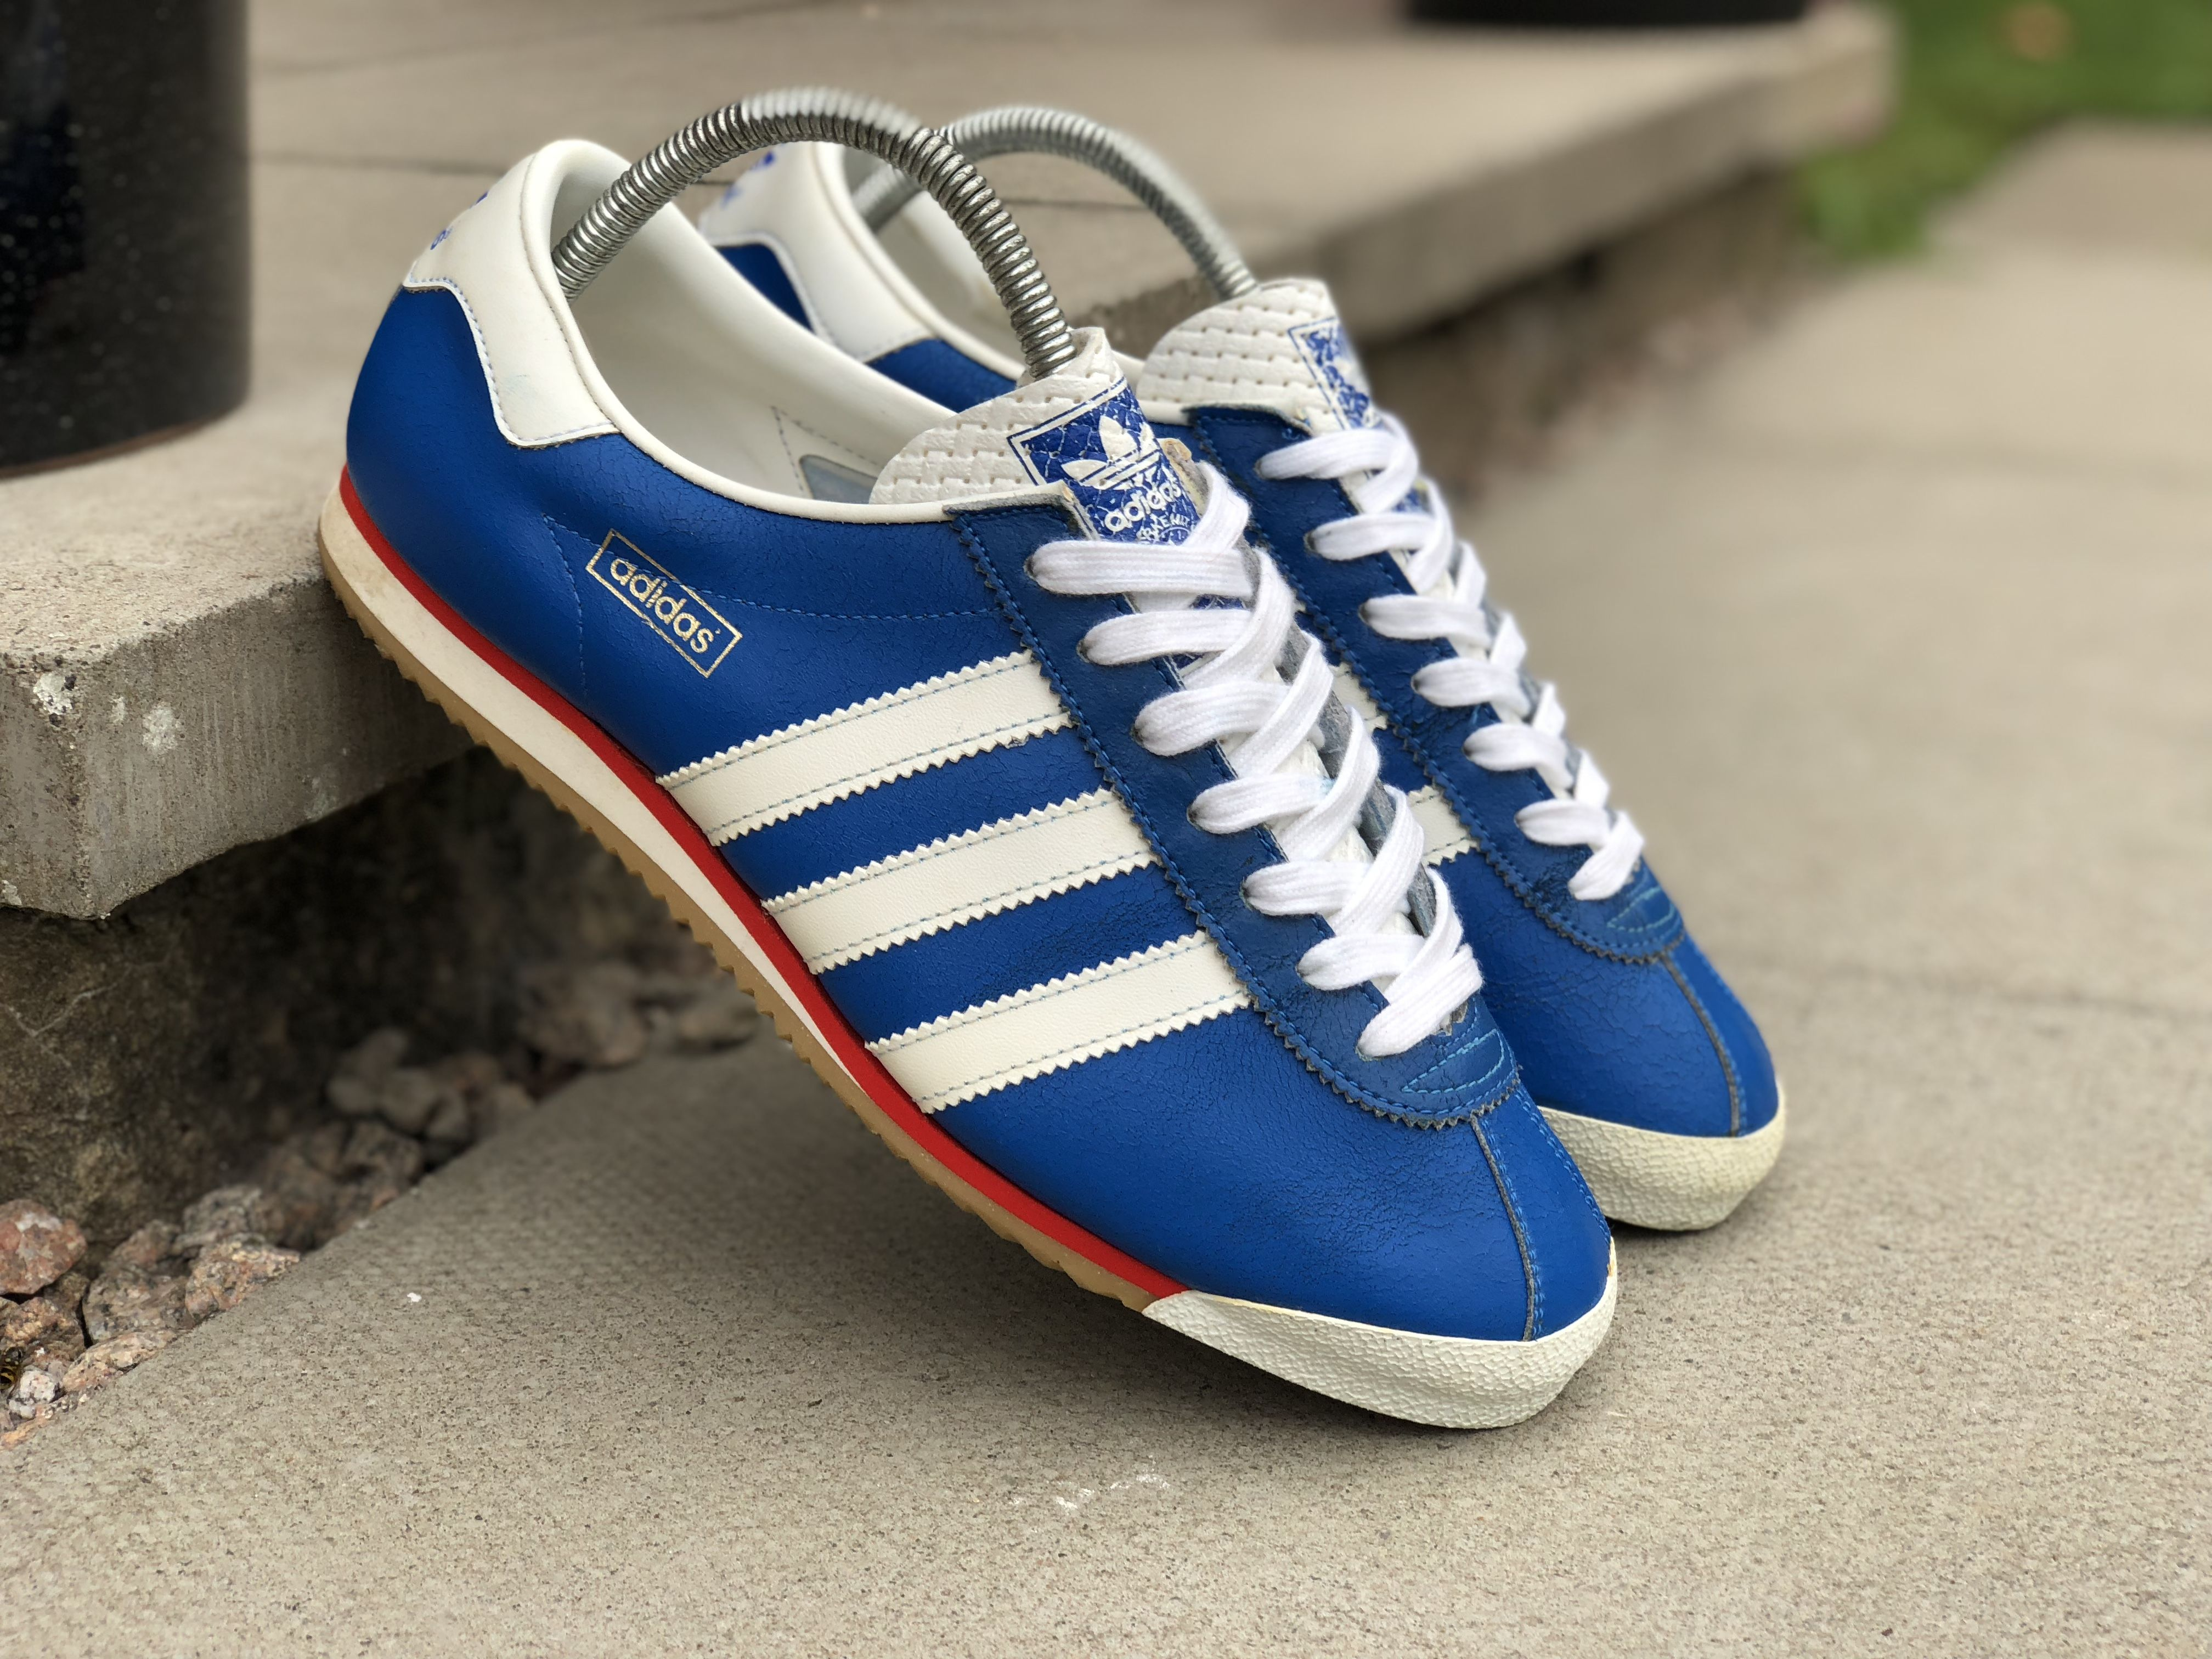 adidas Vienna (Made in Yugoslavia) | Sneakers I Love in 2019